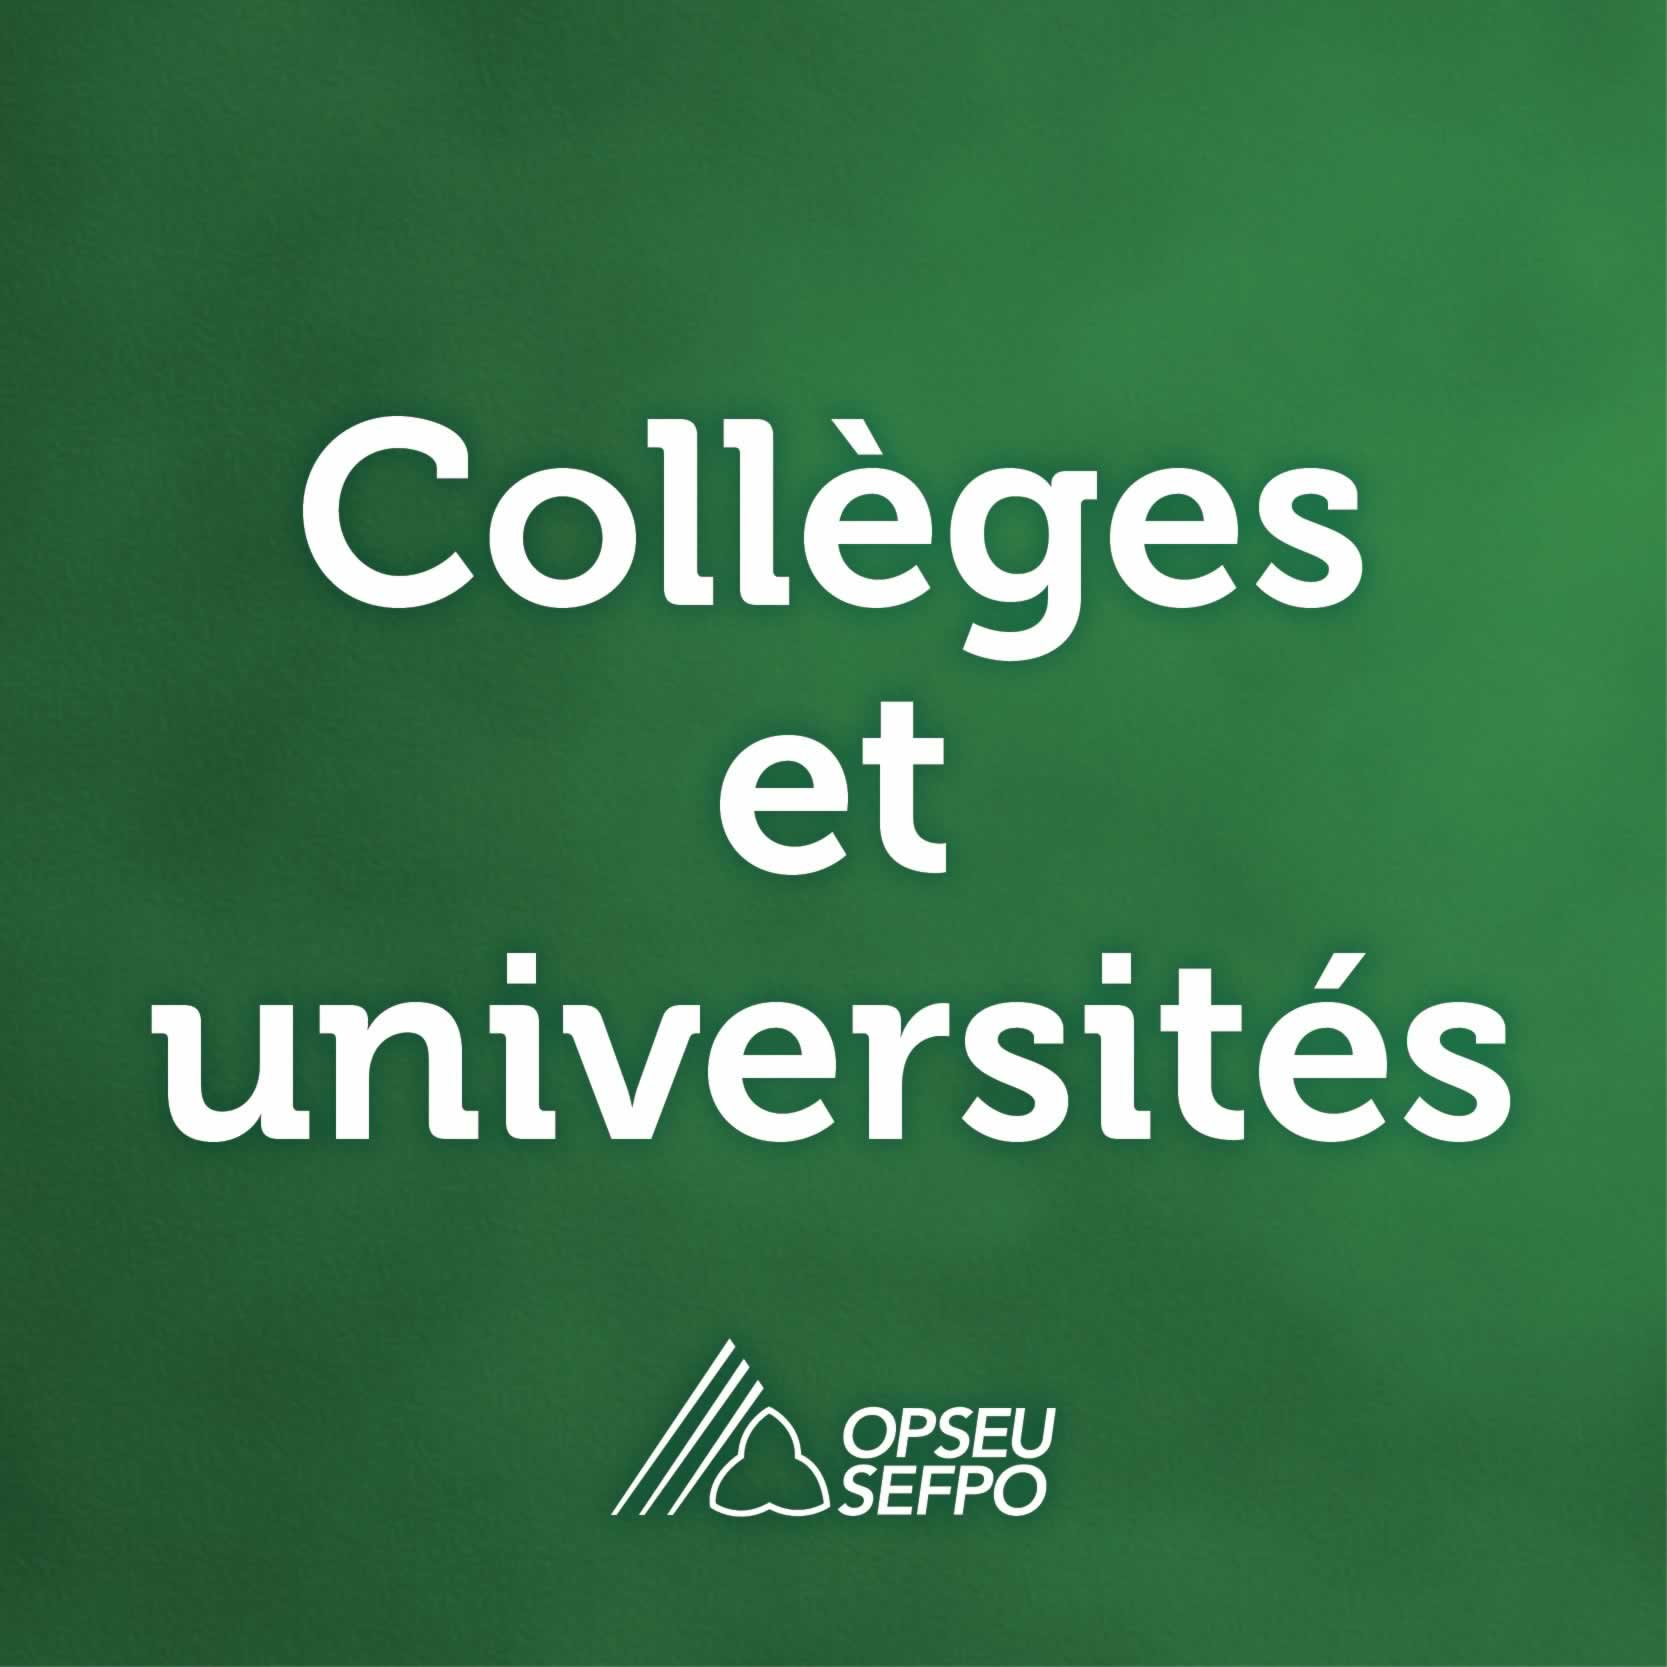 Colleges et universites - SEFPO